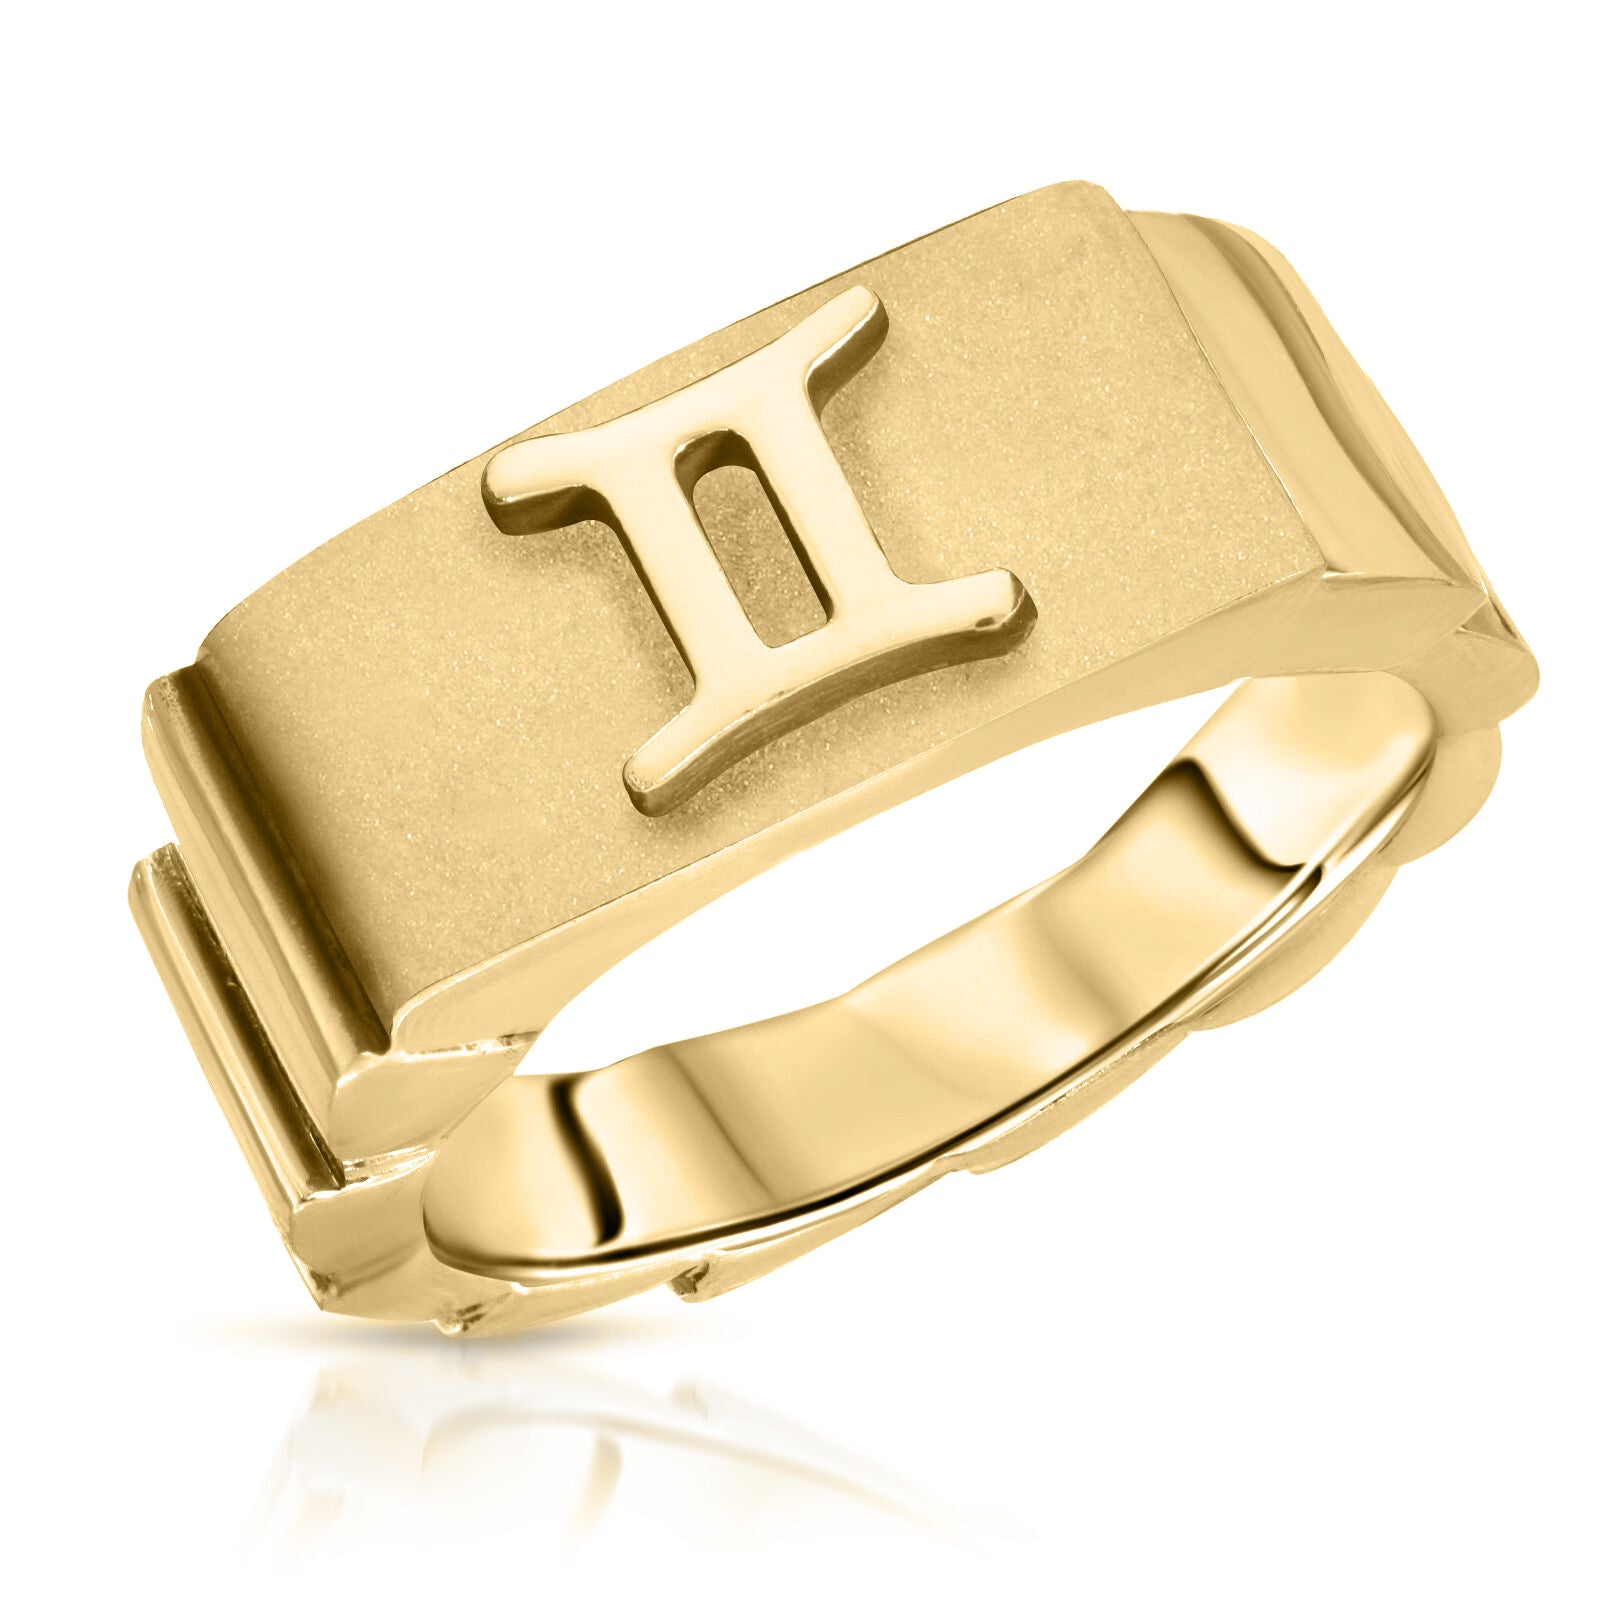 The W Brothers Premium Grade A 925 Sterling Silver Gemini Horoscope Zodiac Ring, perfect for a fashionable statement for men and women's jewelry accessory. Available in silver, gold, rose gold at www.thewbros.com.